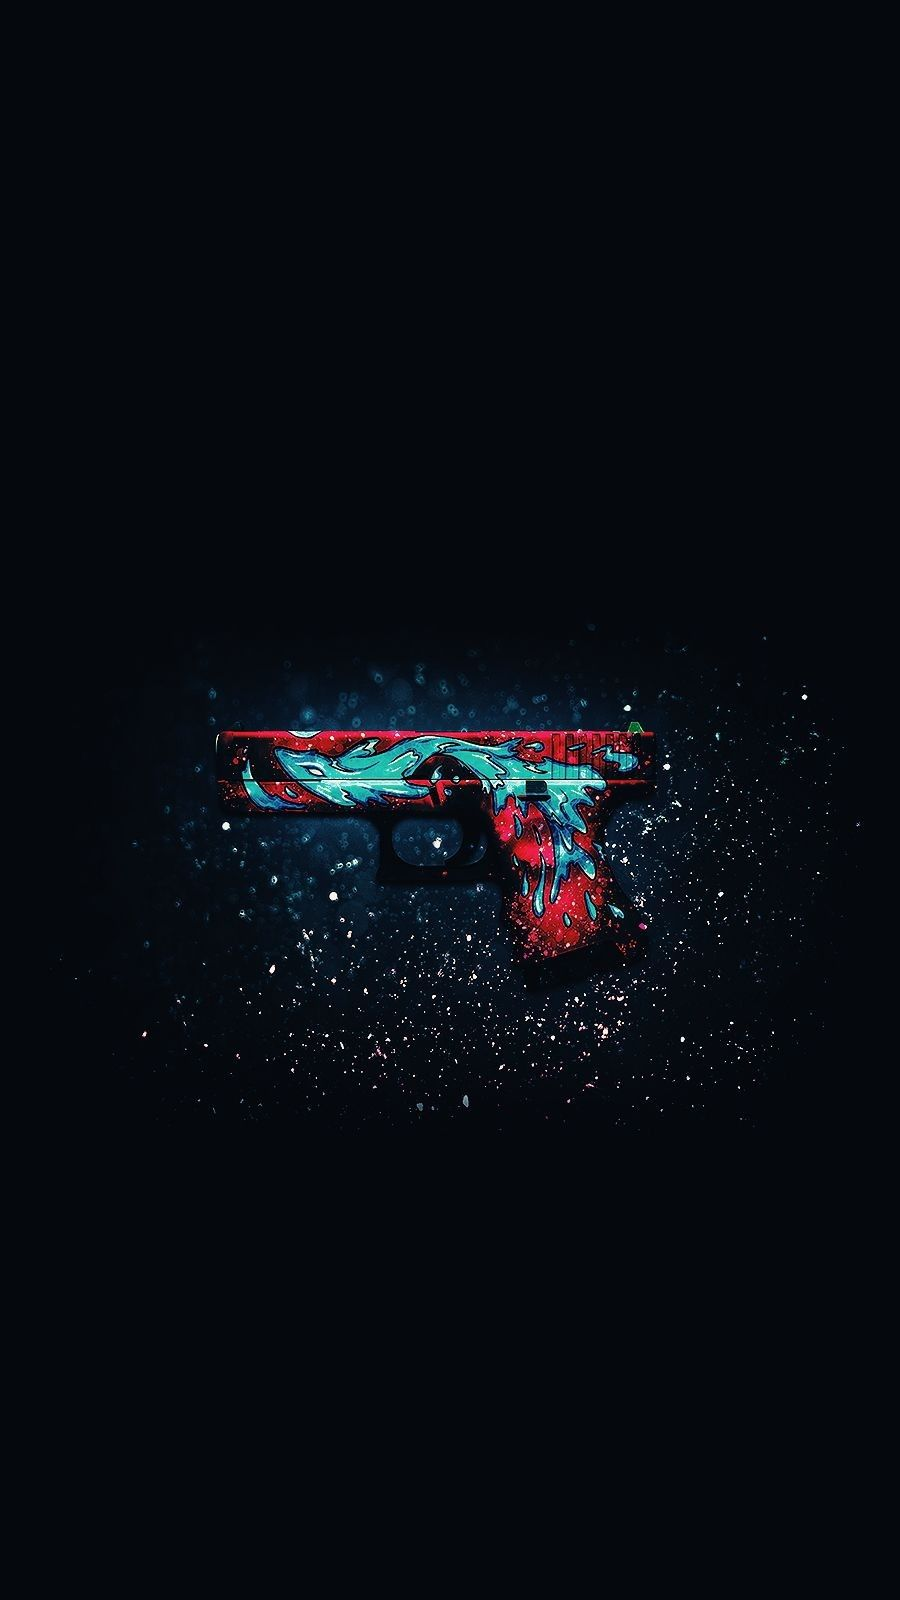 Pin By Kukuh Taufiq On Freefire Game Wallpaper Iphone Go Wallpaper Guns Wallpaper